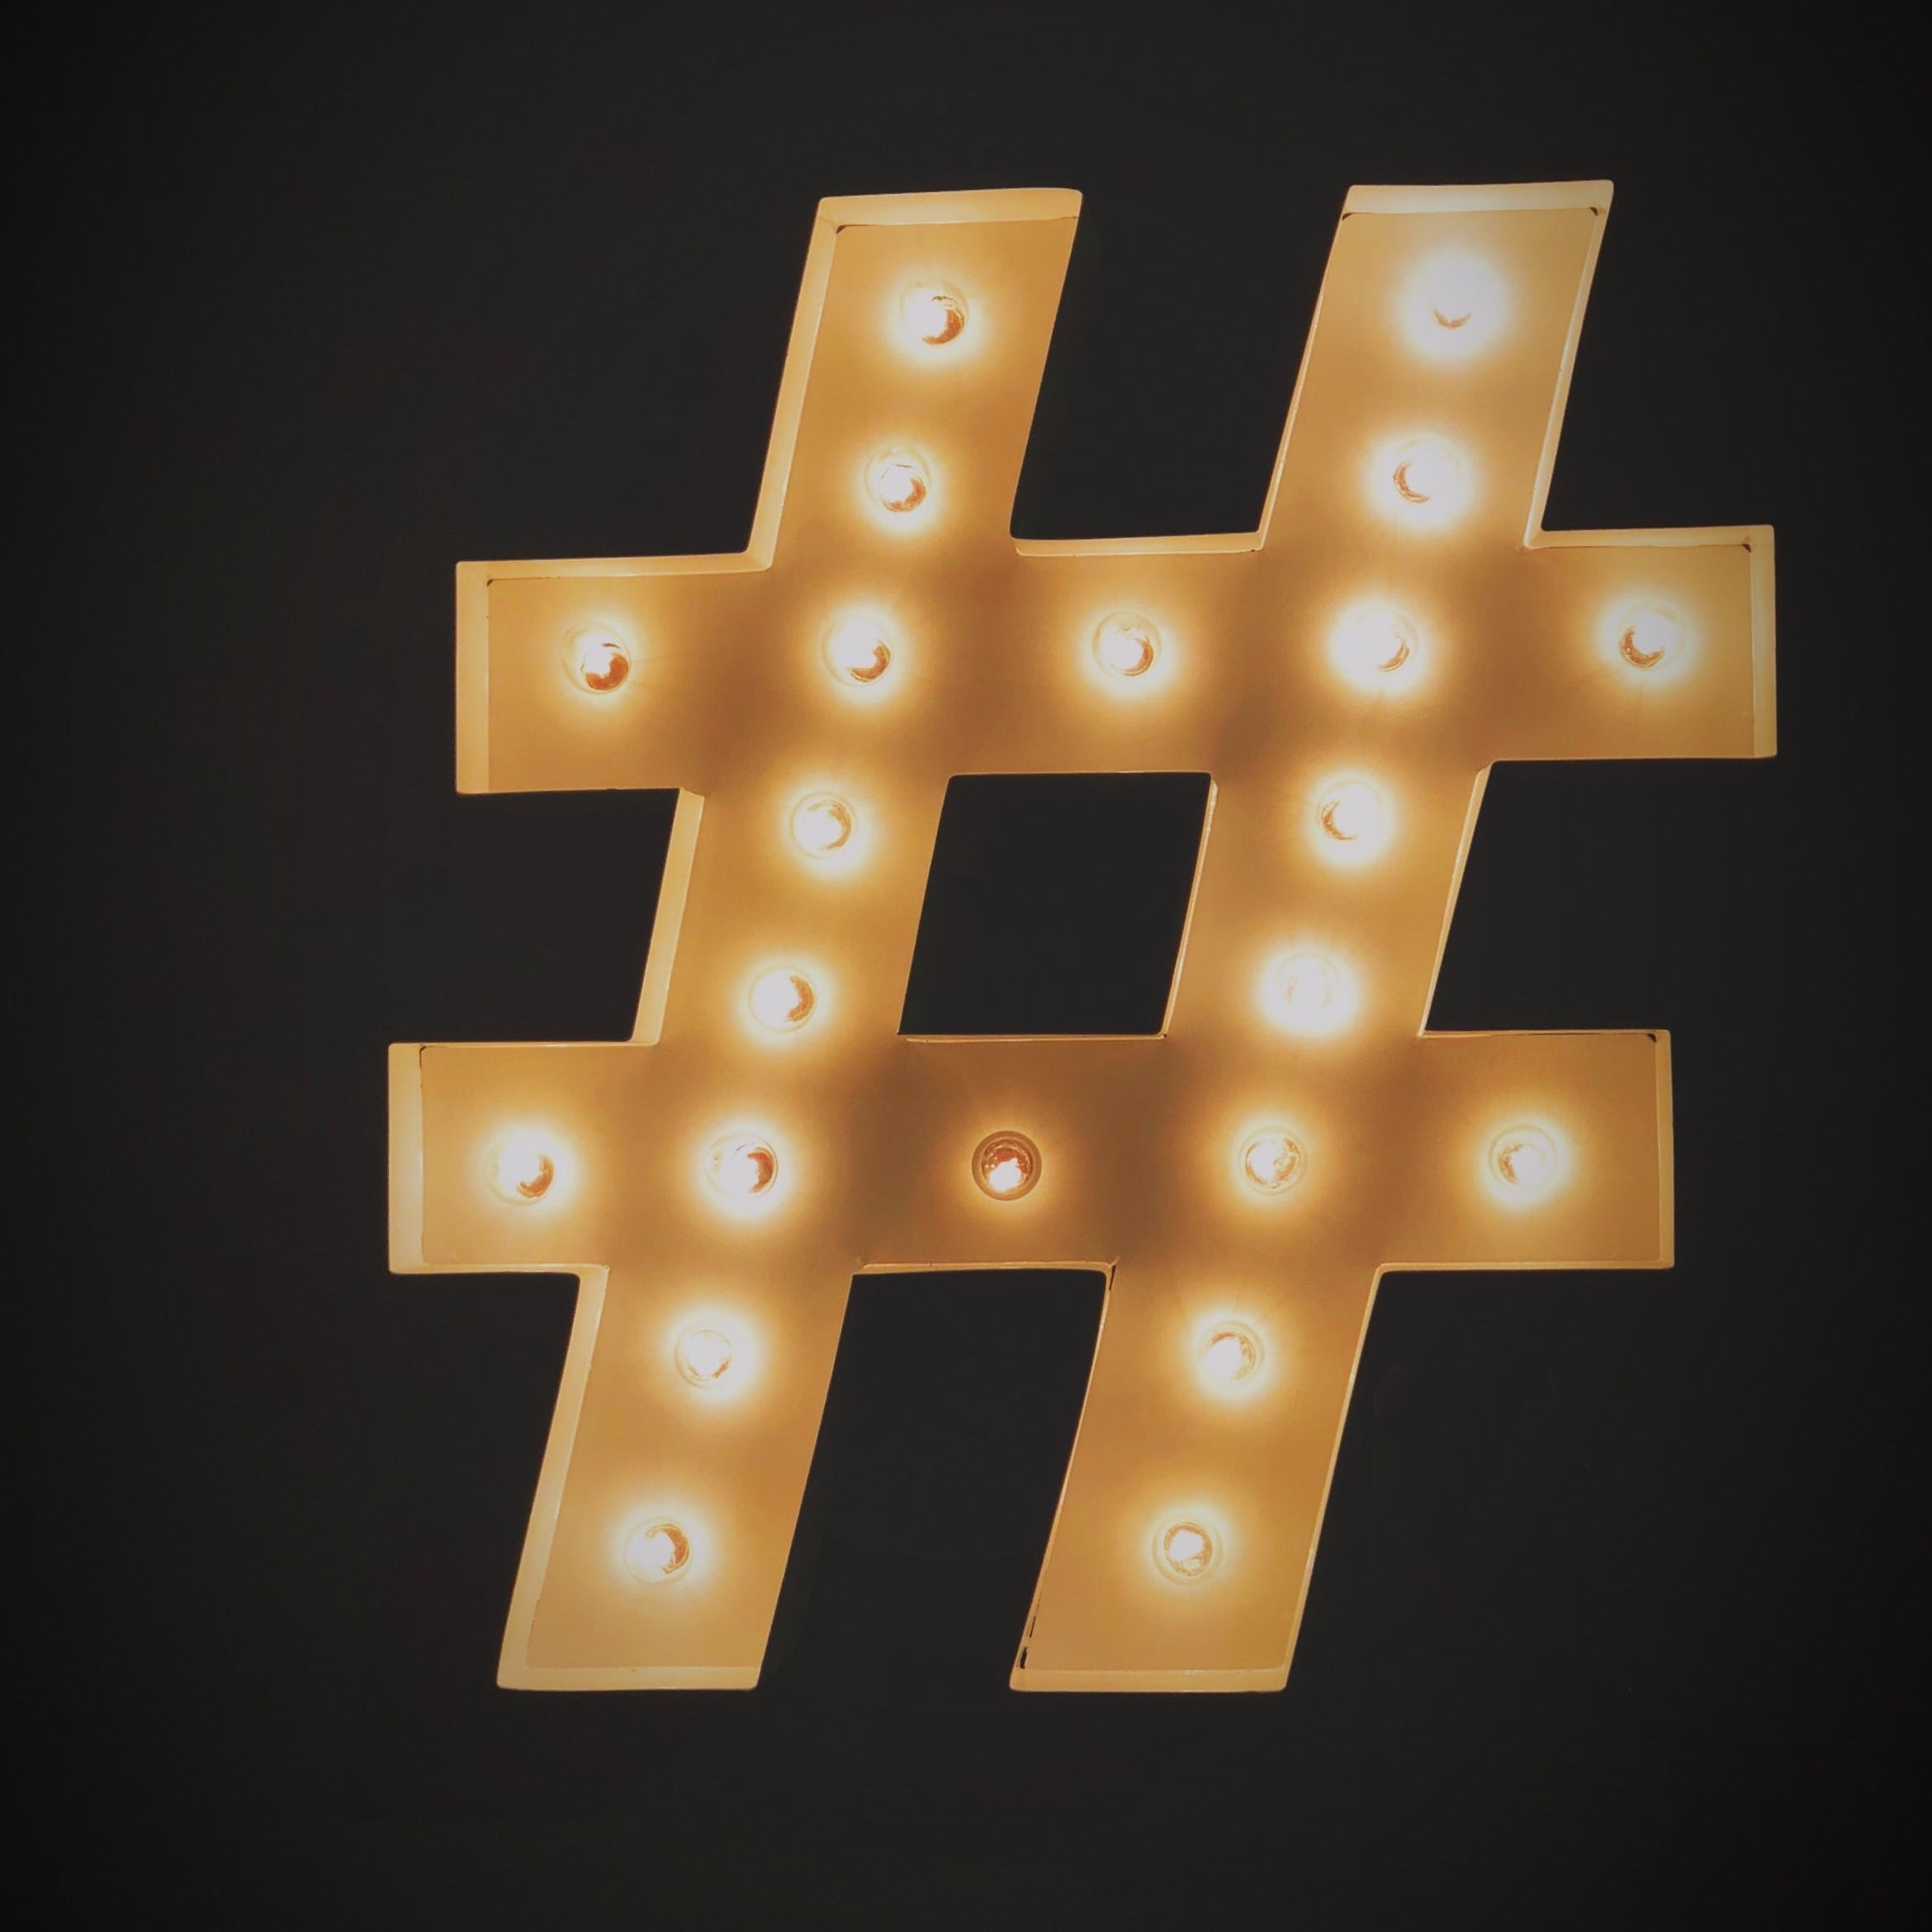 2. Work With #hashtags